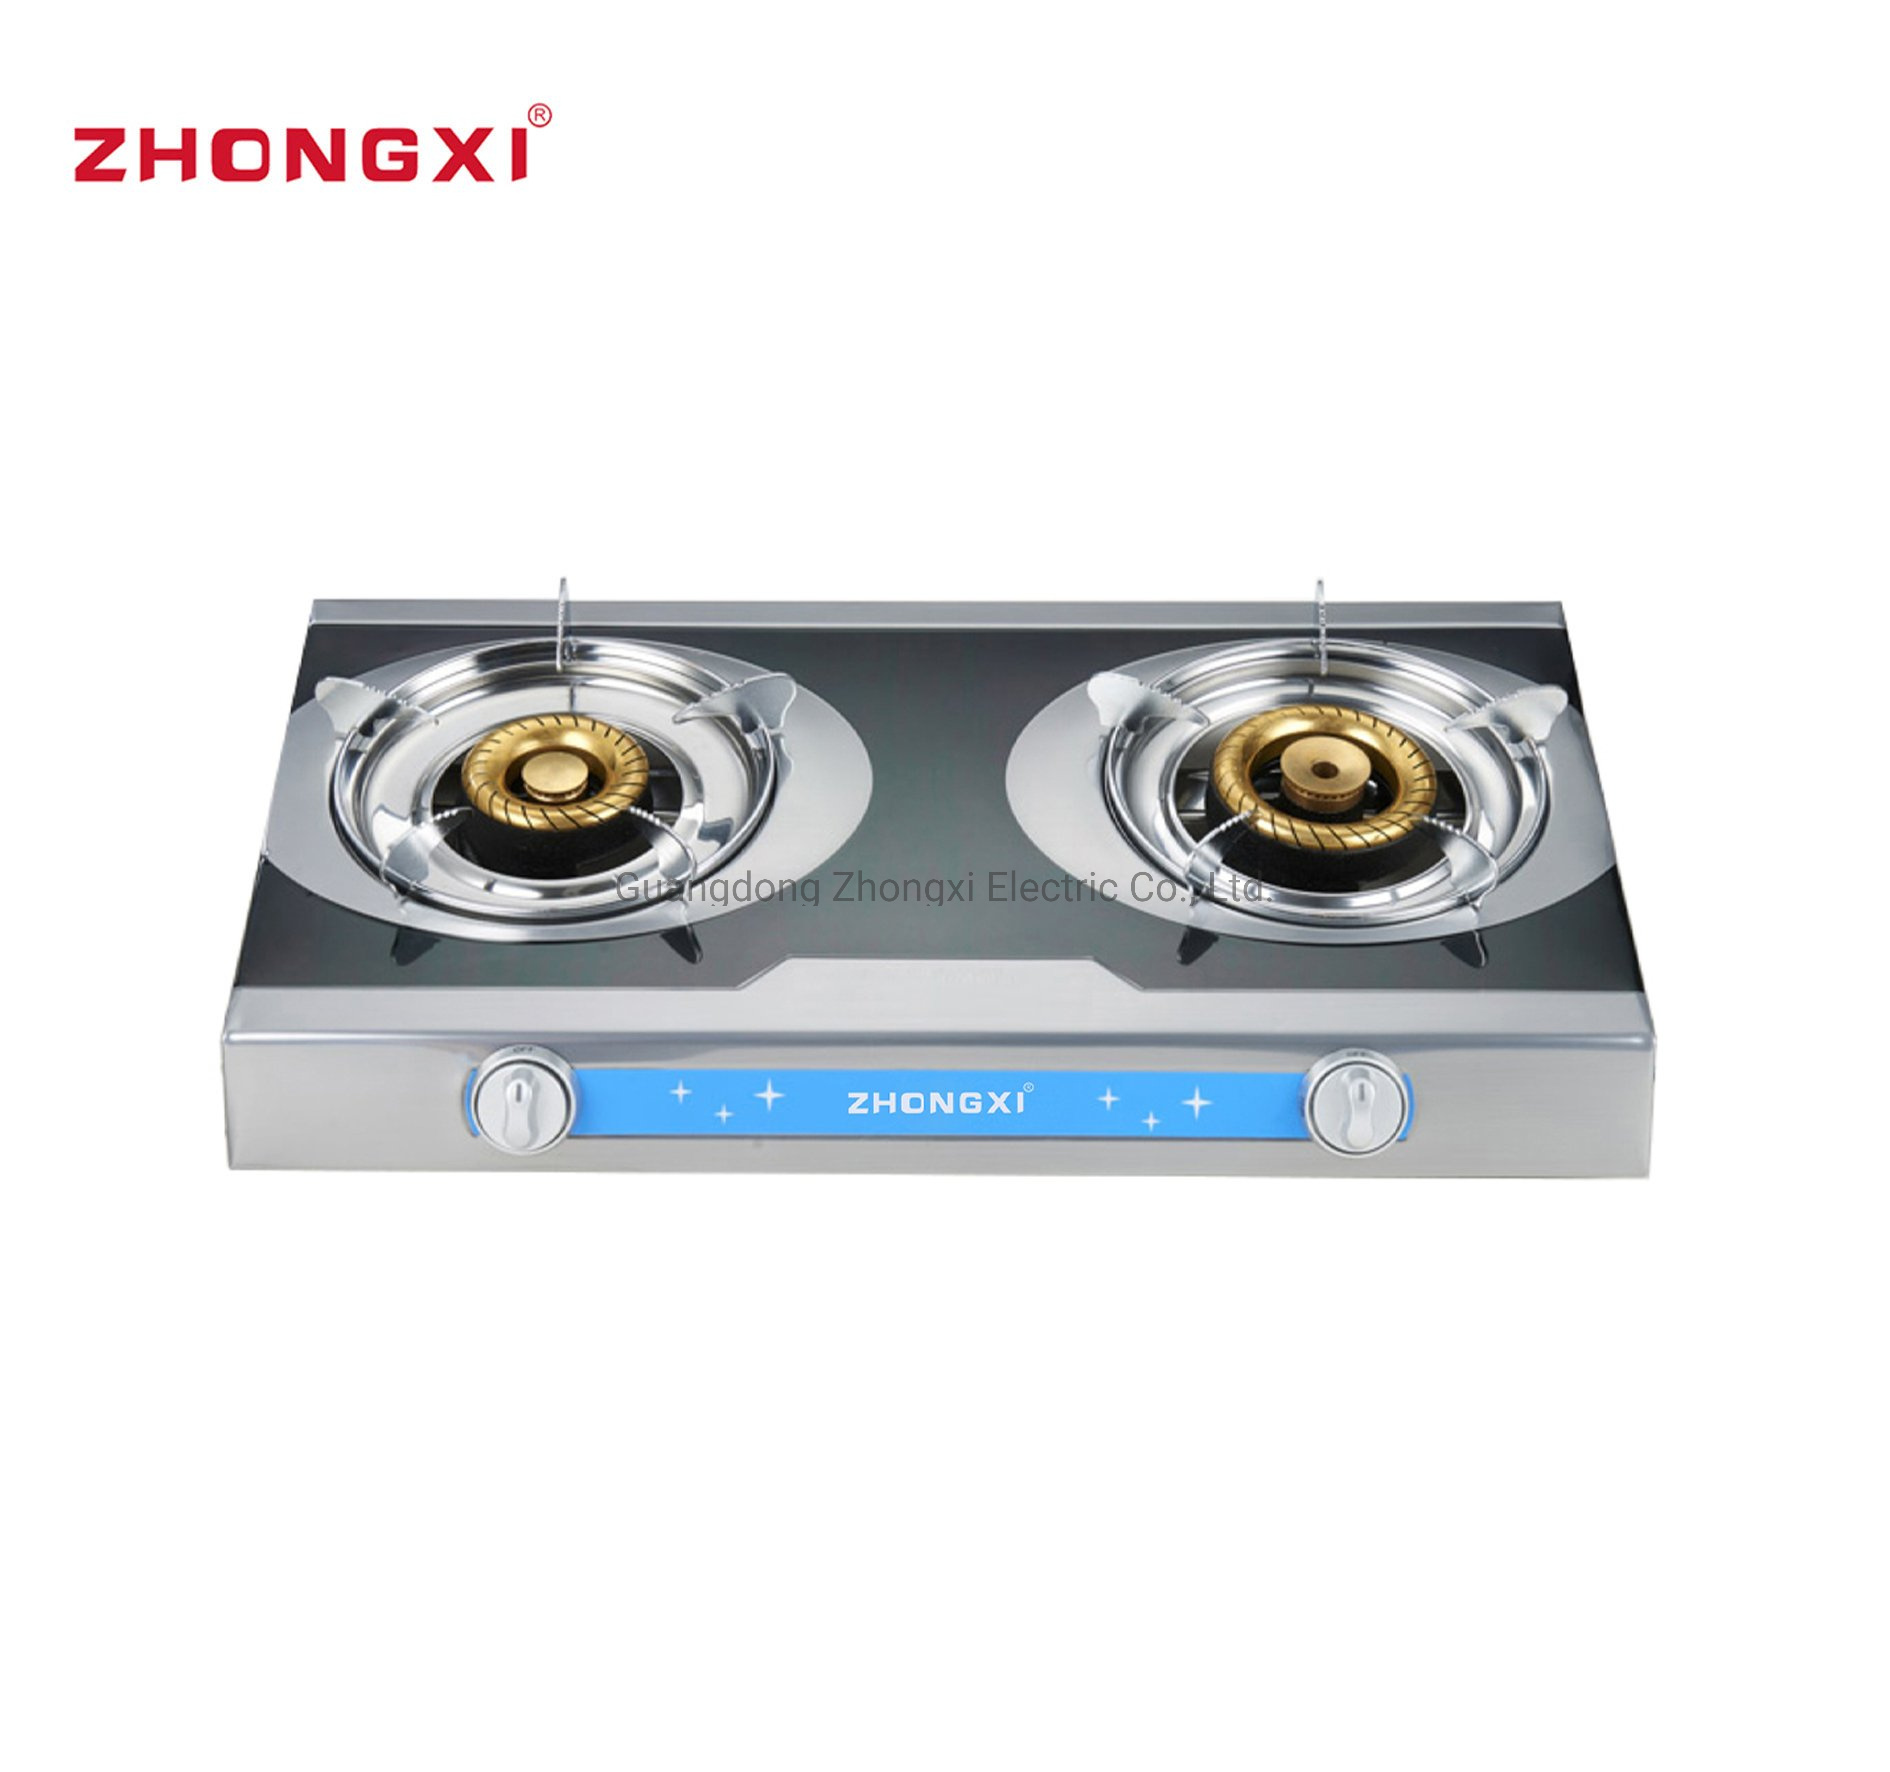 Hot Item Xunda Cooker Valve Two Plate Top Table Burner Turbo Tabletop Gas Stove Jz Rs249